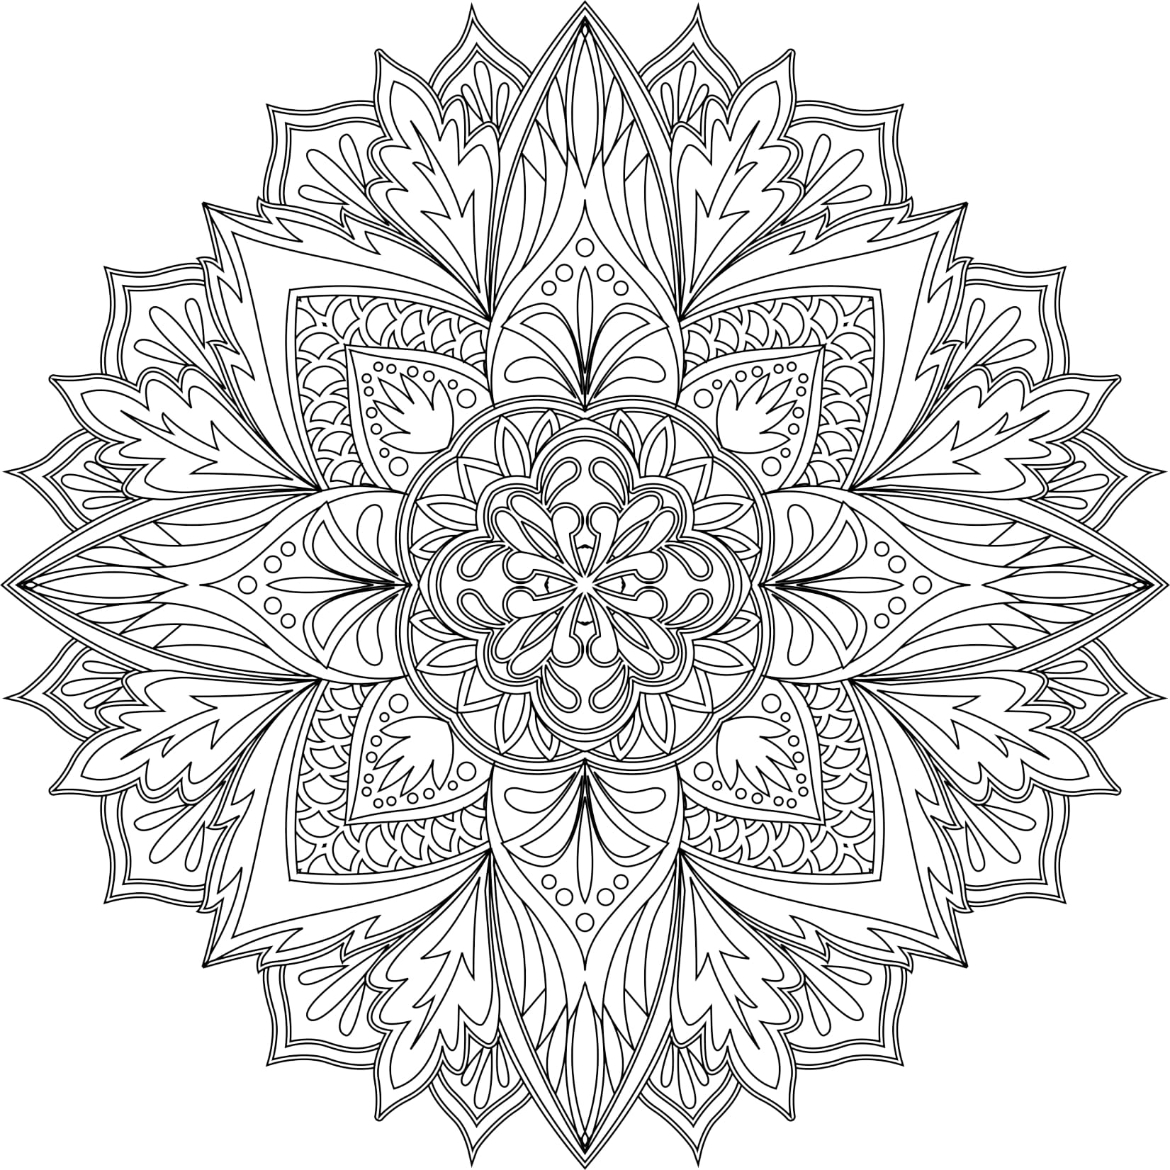 Mandalas To Color Volume 1 - Image 1